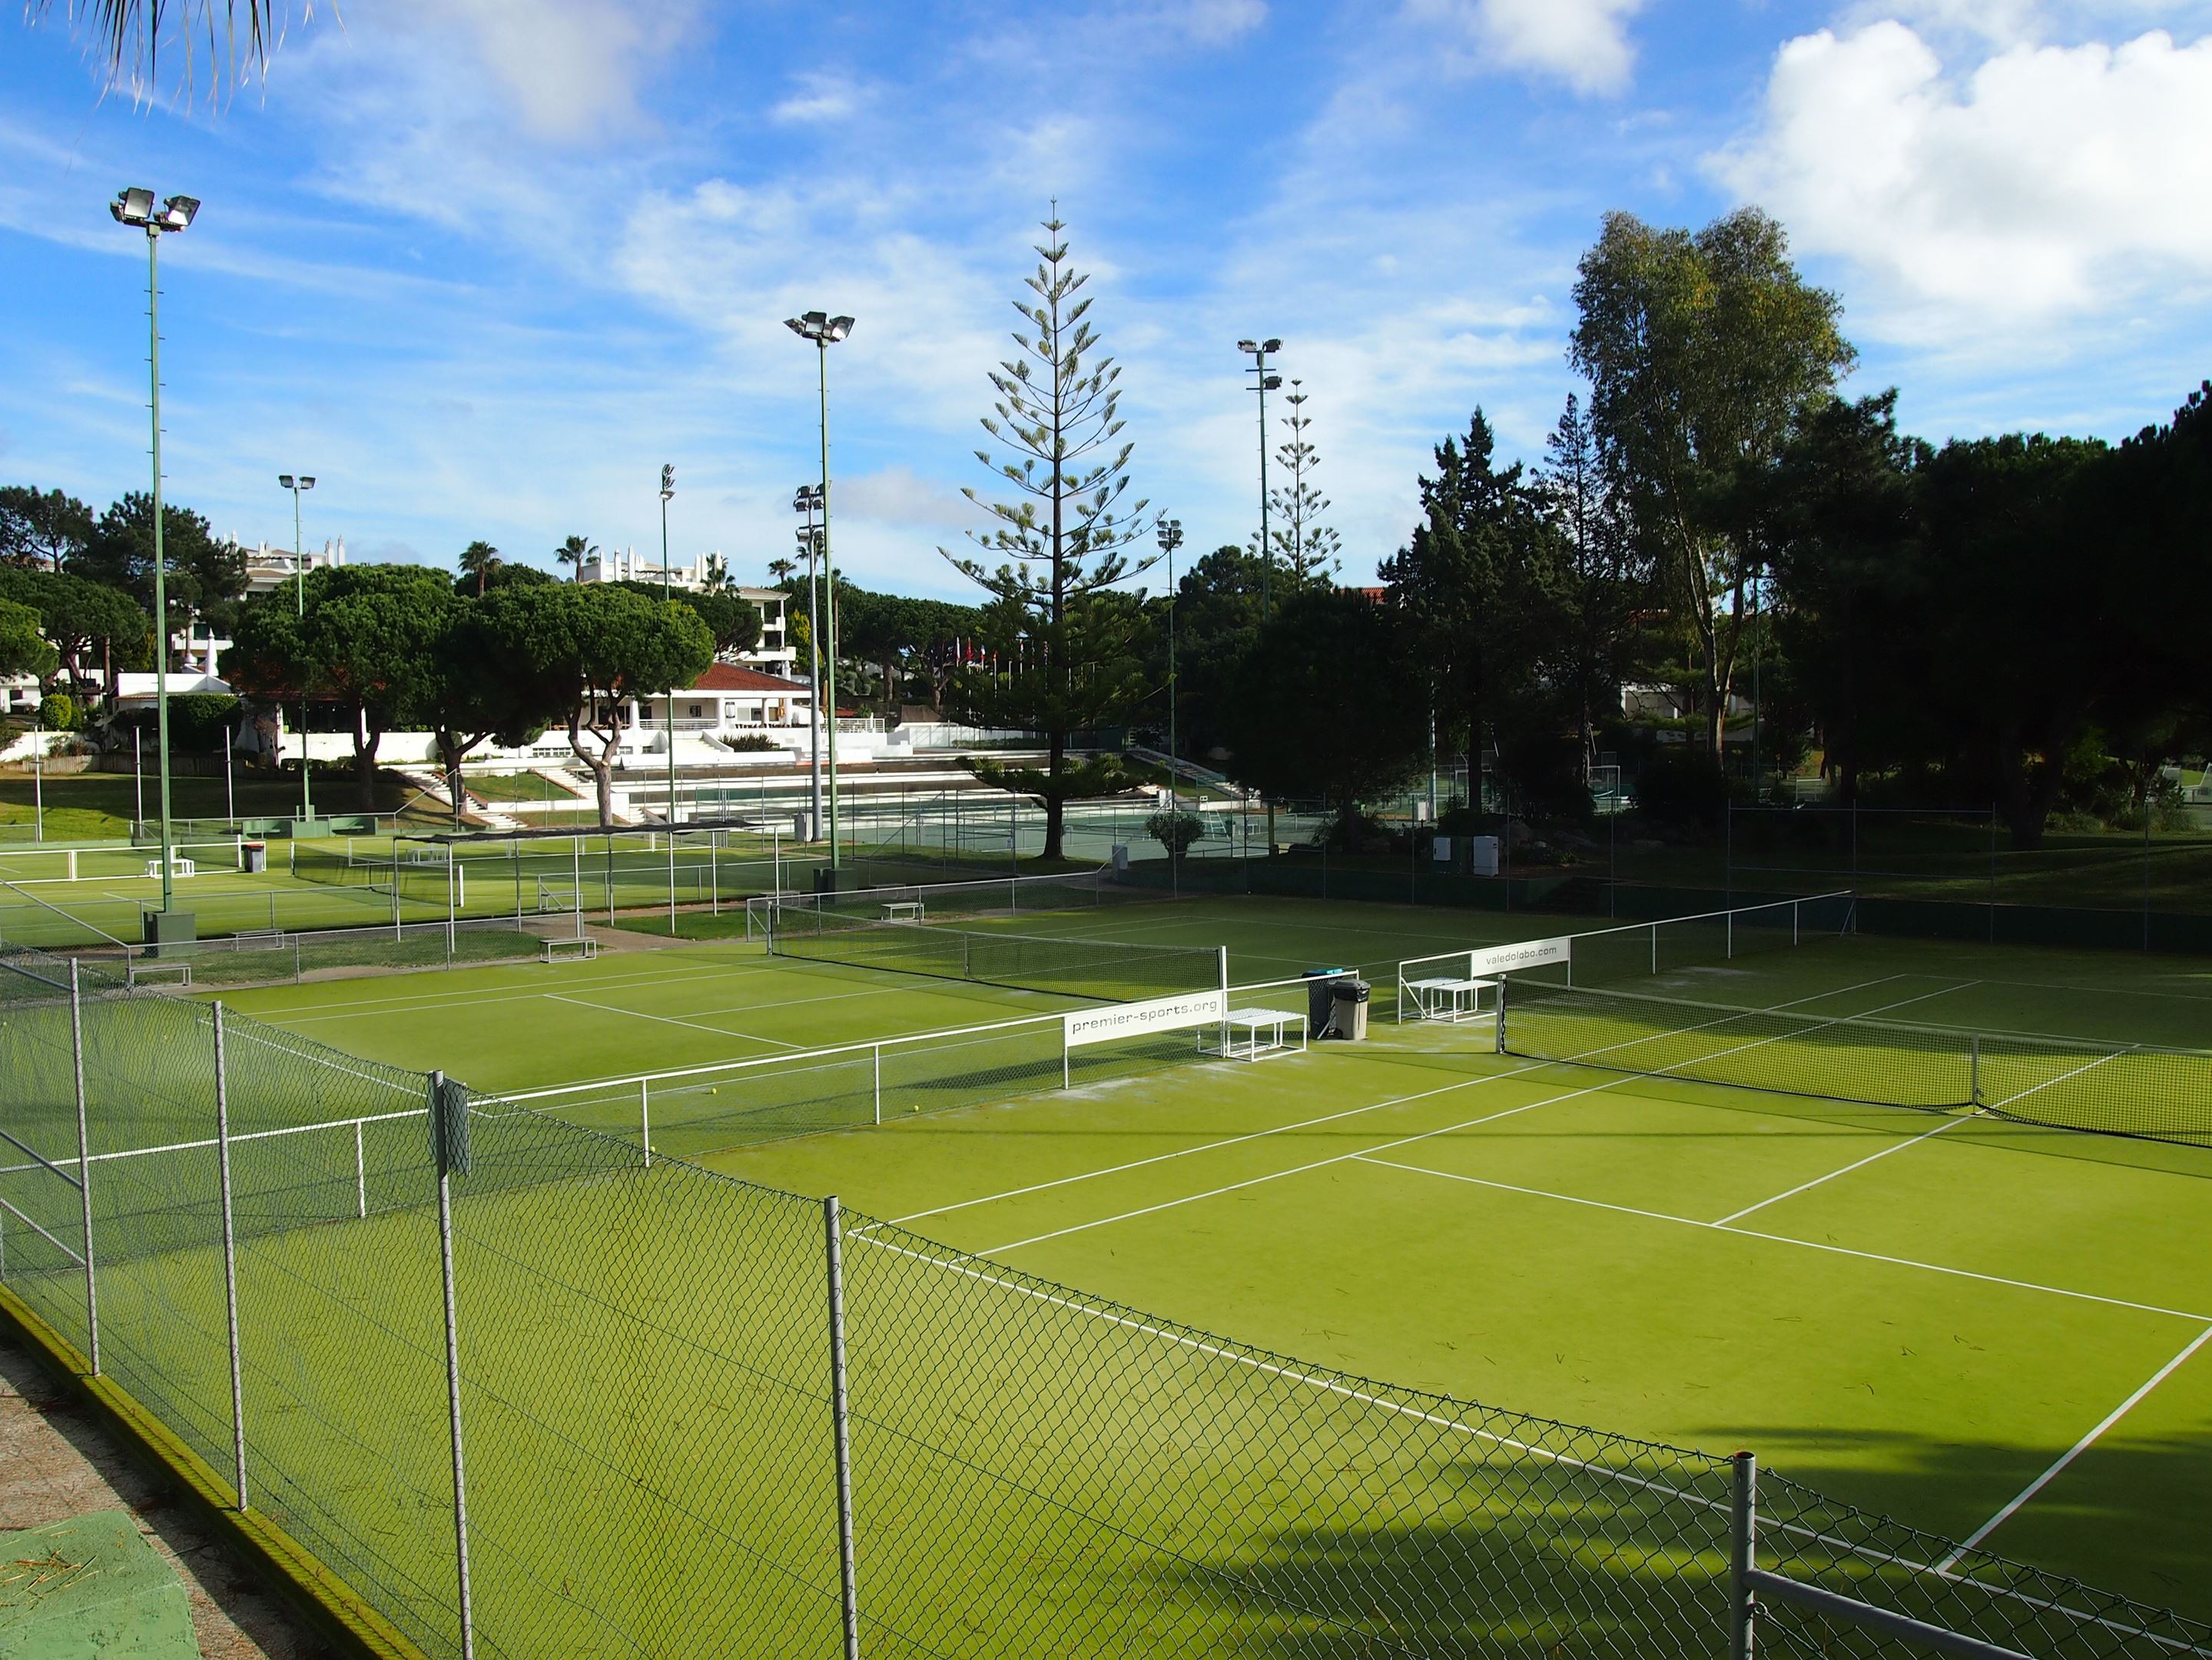 Algarve Tennis - Vale do Lobo Tennis Academy